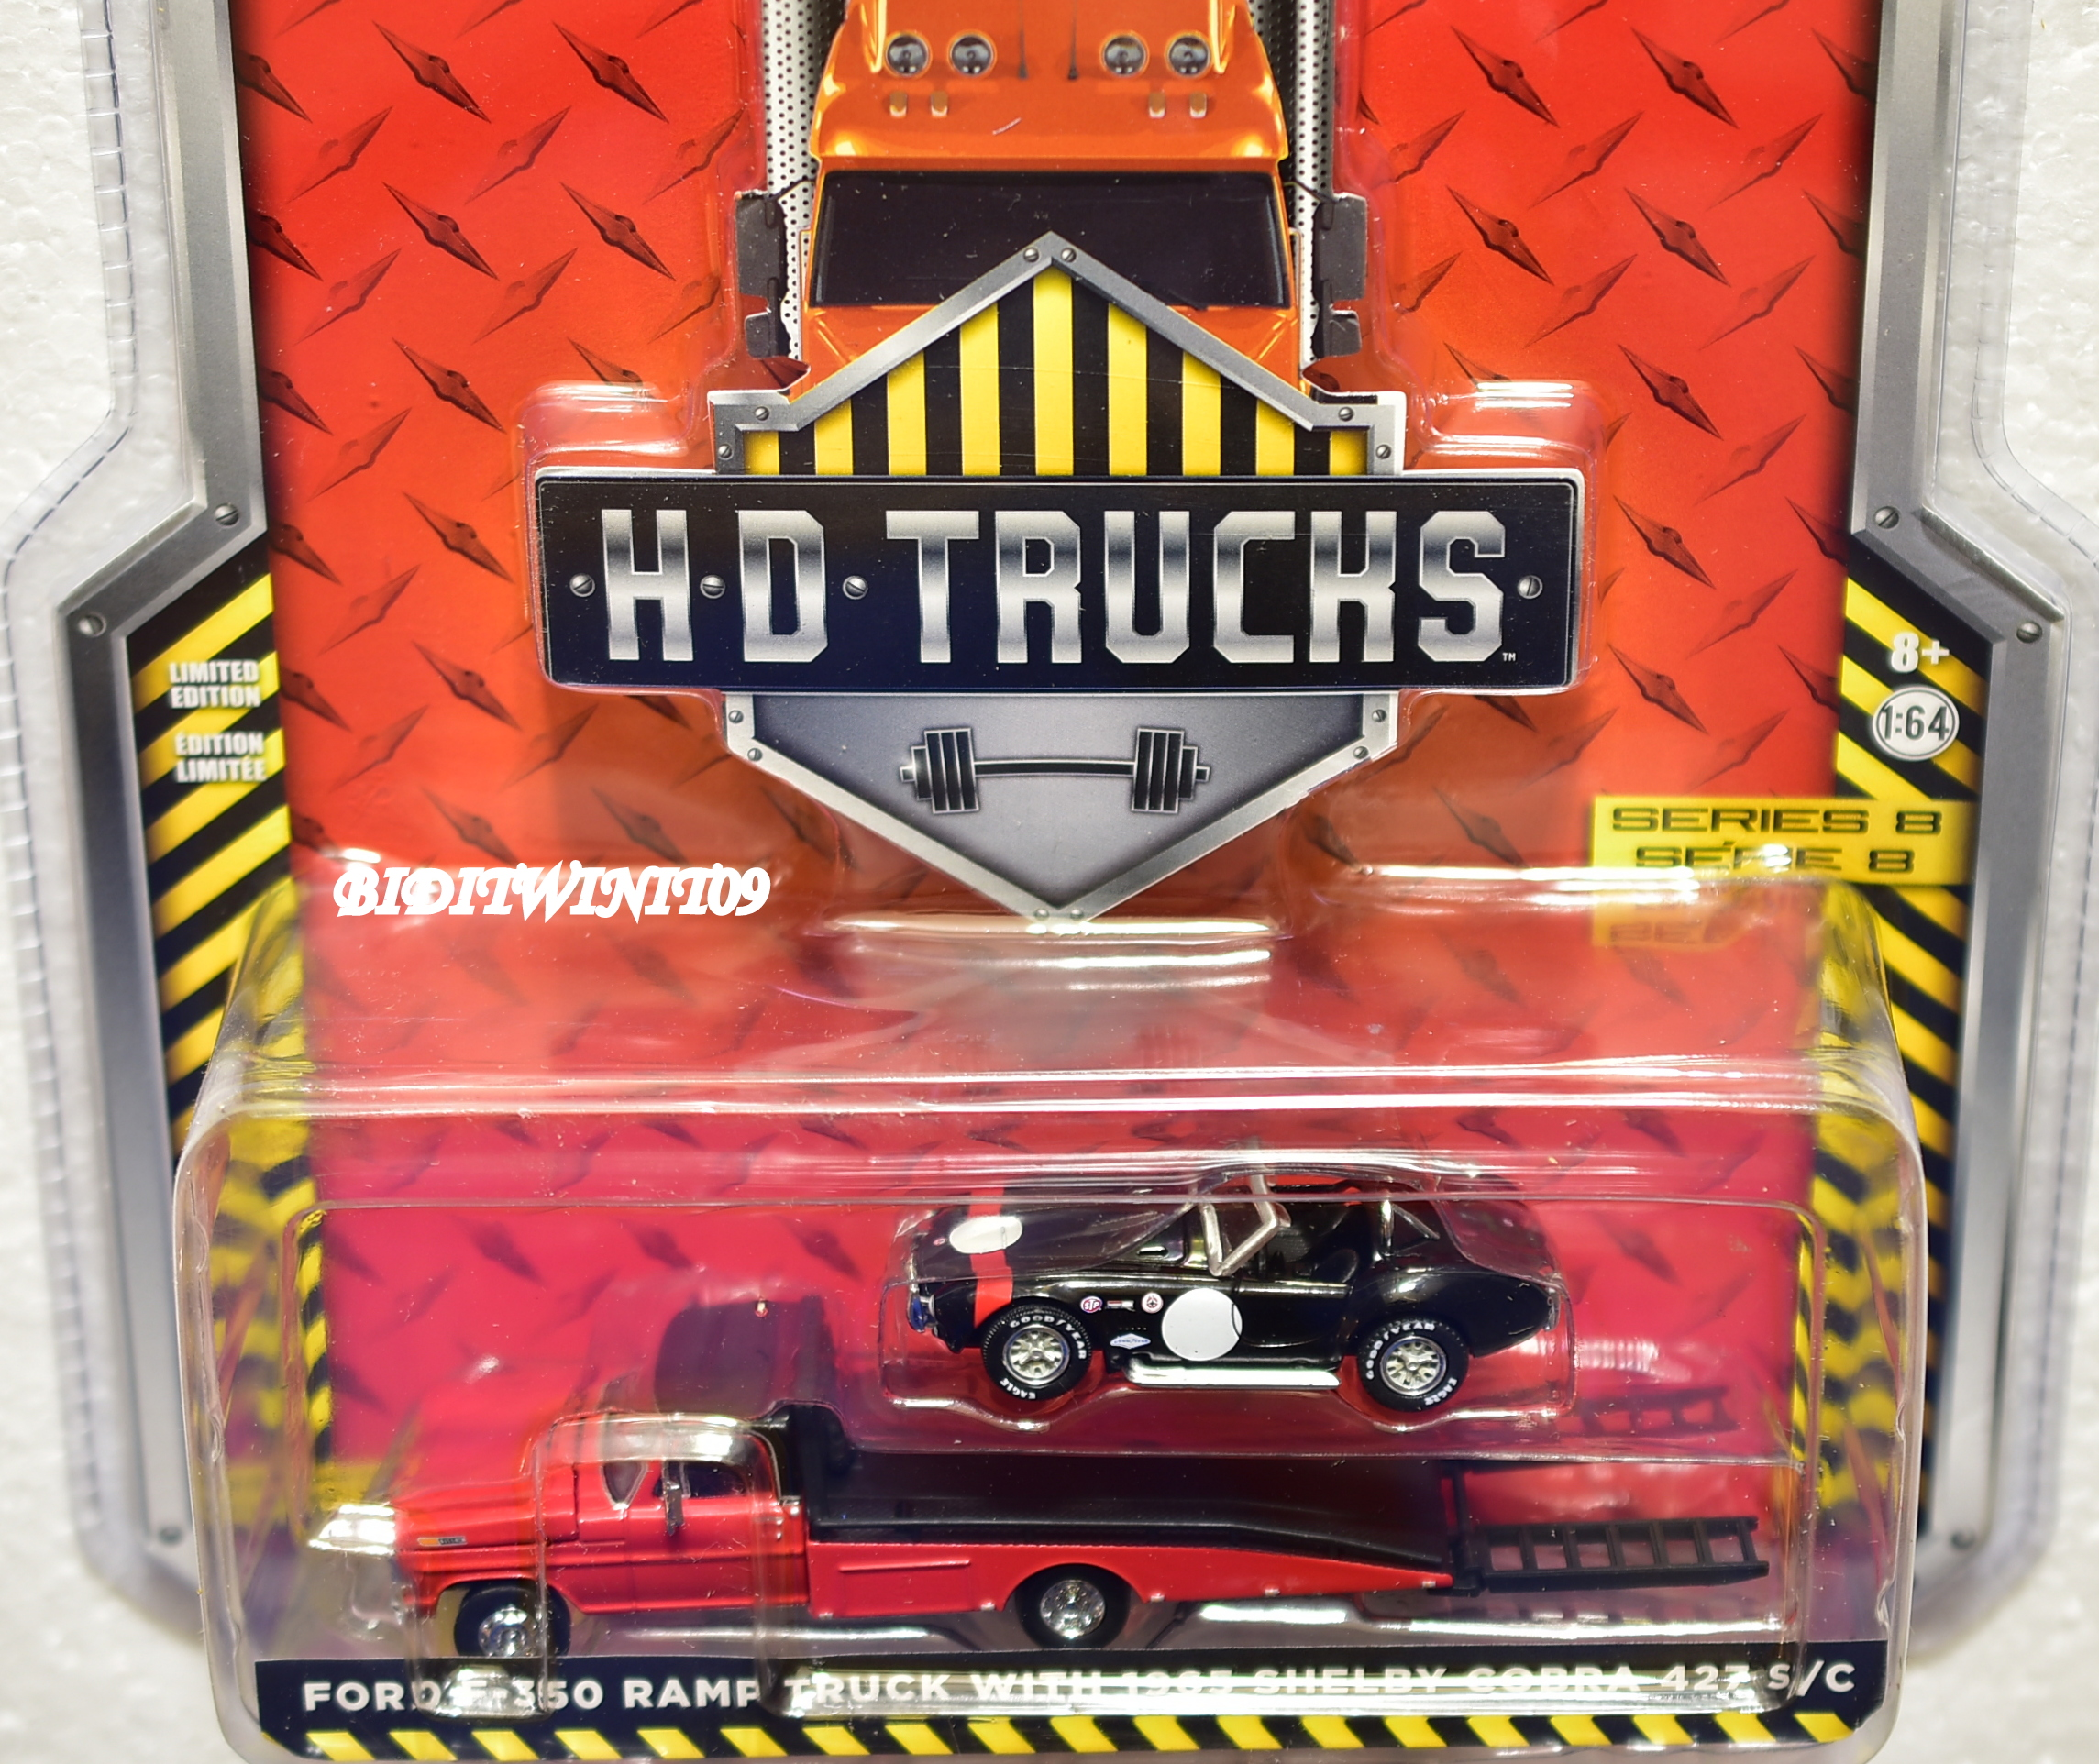 GREENLIGHT .H.D.TRUCKS. FORD F-350 RAMP TRUCK WITH 1965 SHELBY COBRA 427 S/C